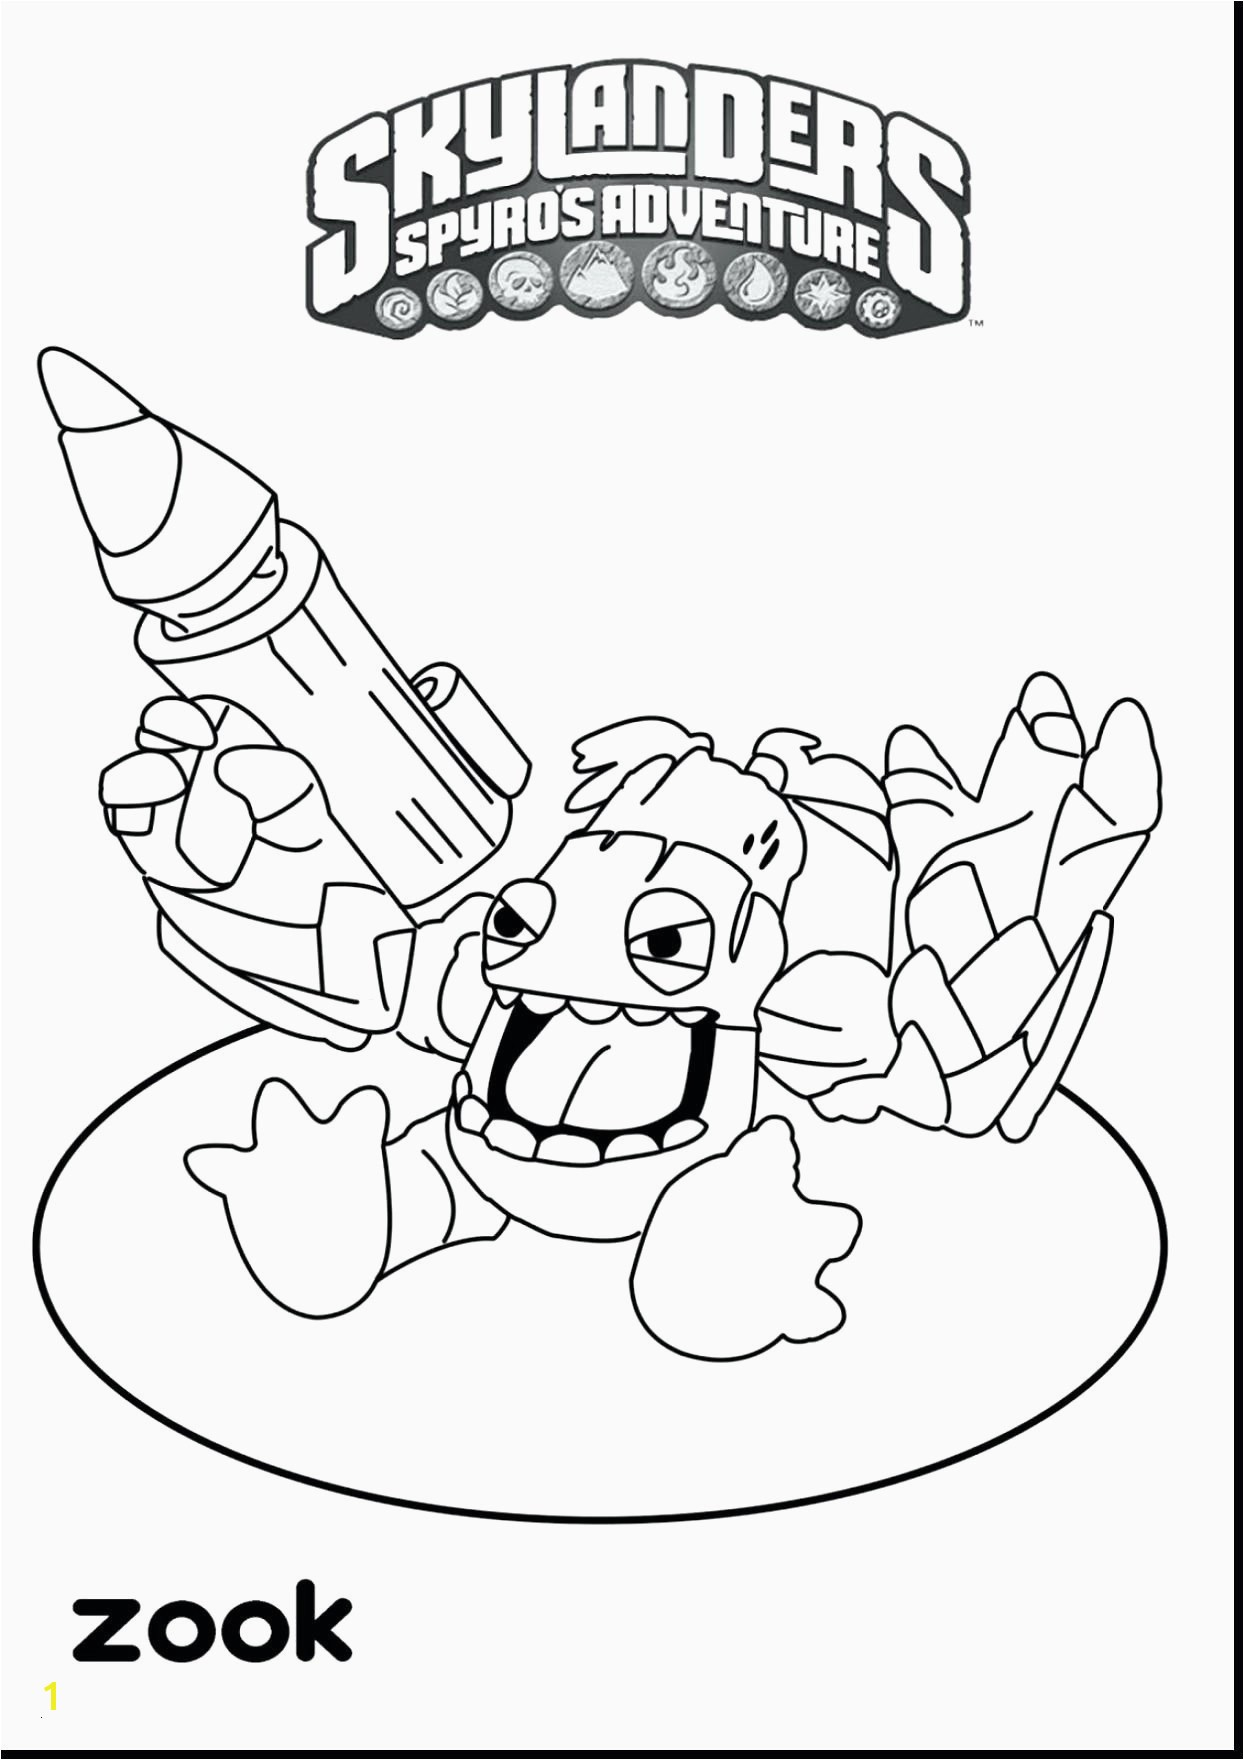 Christian Coloring Sheets Fresh Fresh Bible Coloring Pages For Kids Coloring Pages